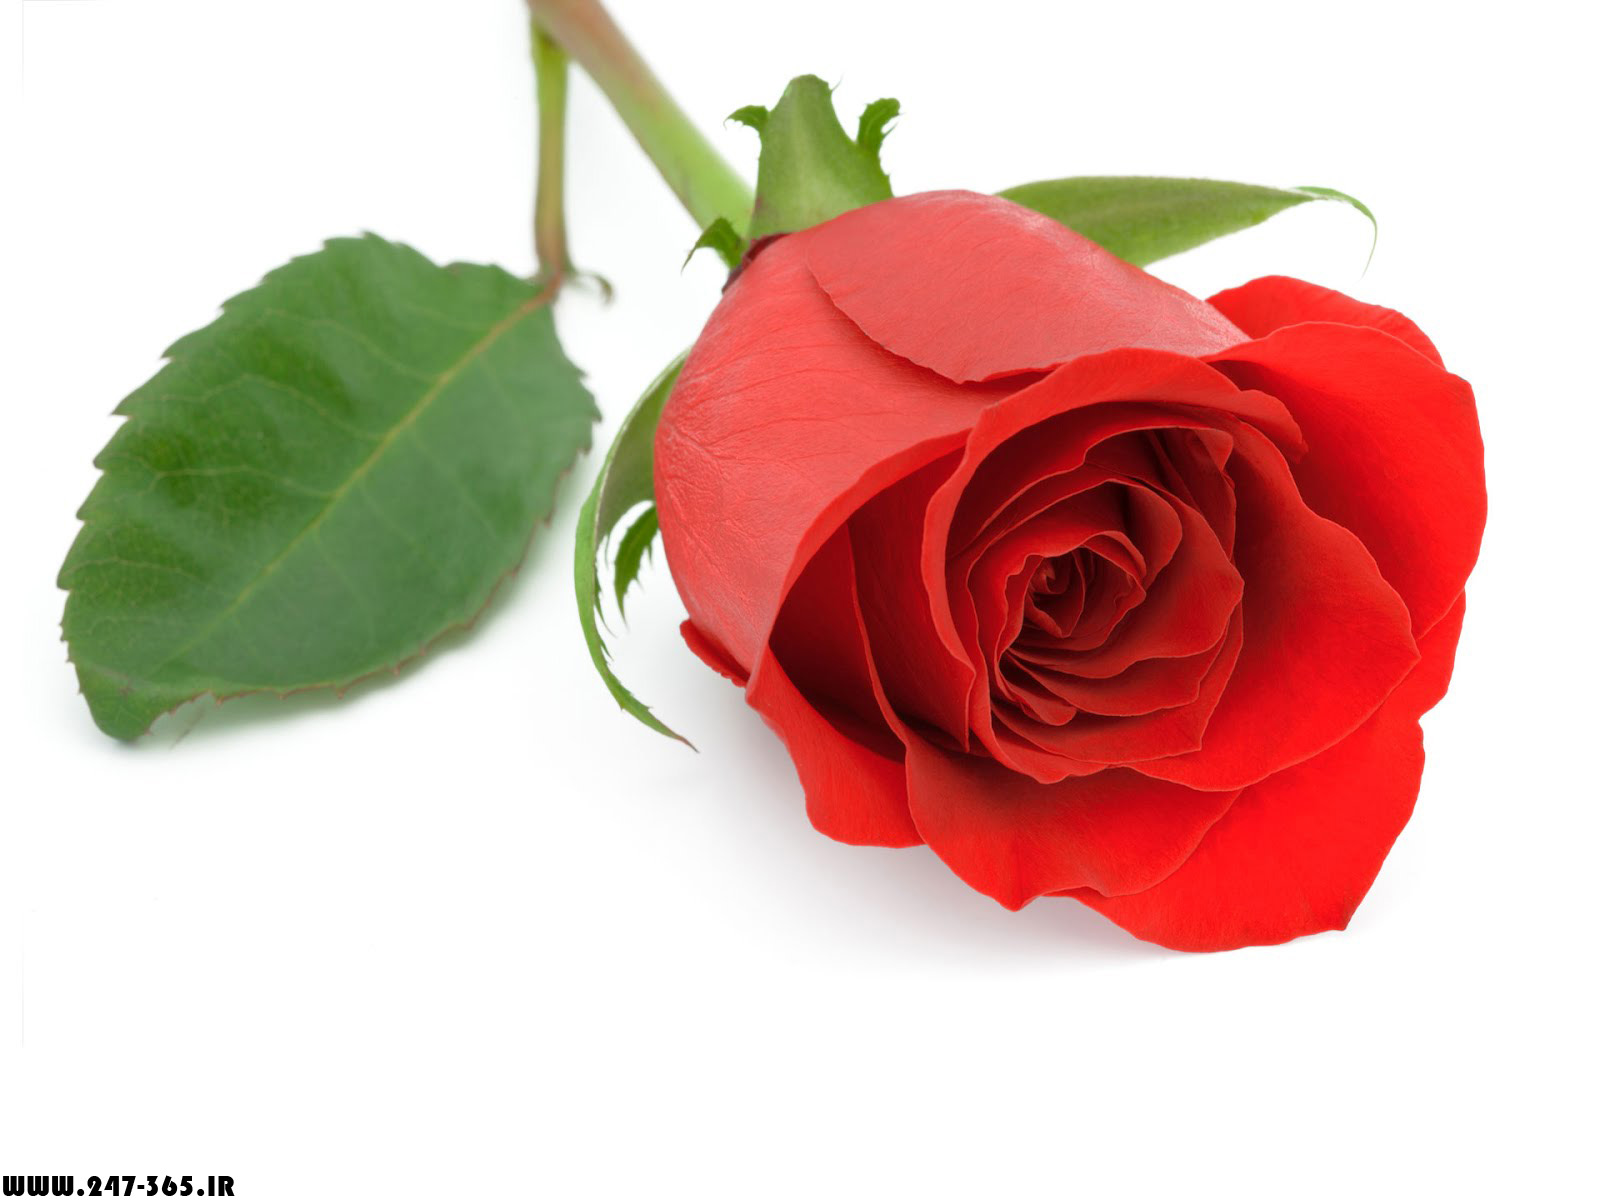 http://dl.247-365.ir/pic/gol/red_rose_4/Red_Rose_4_18.jpg